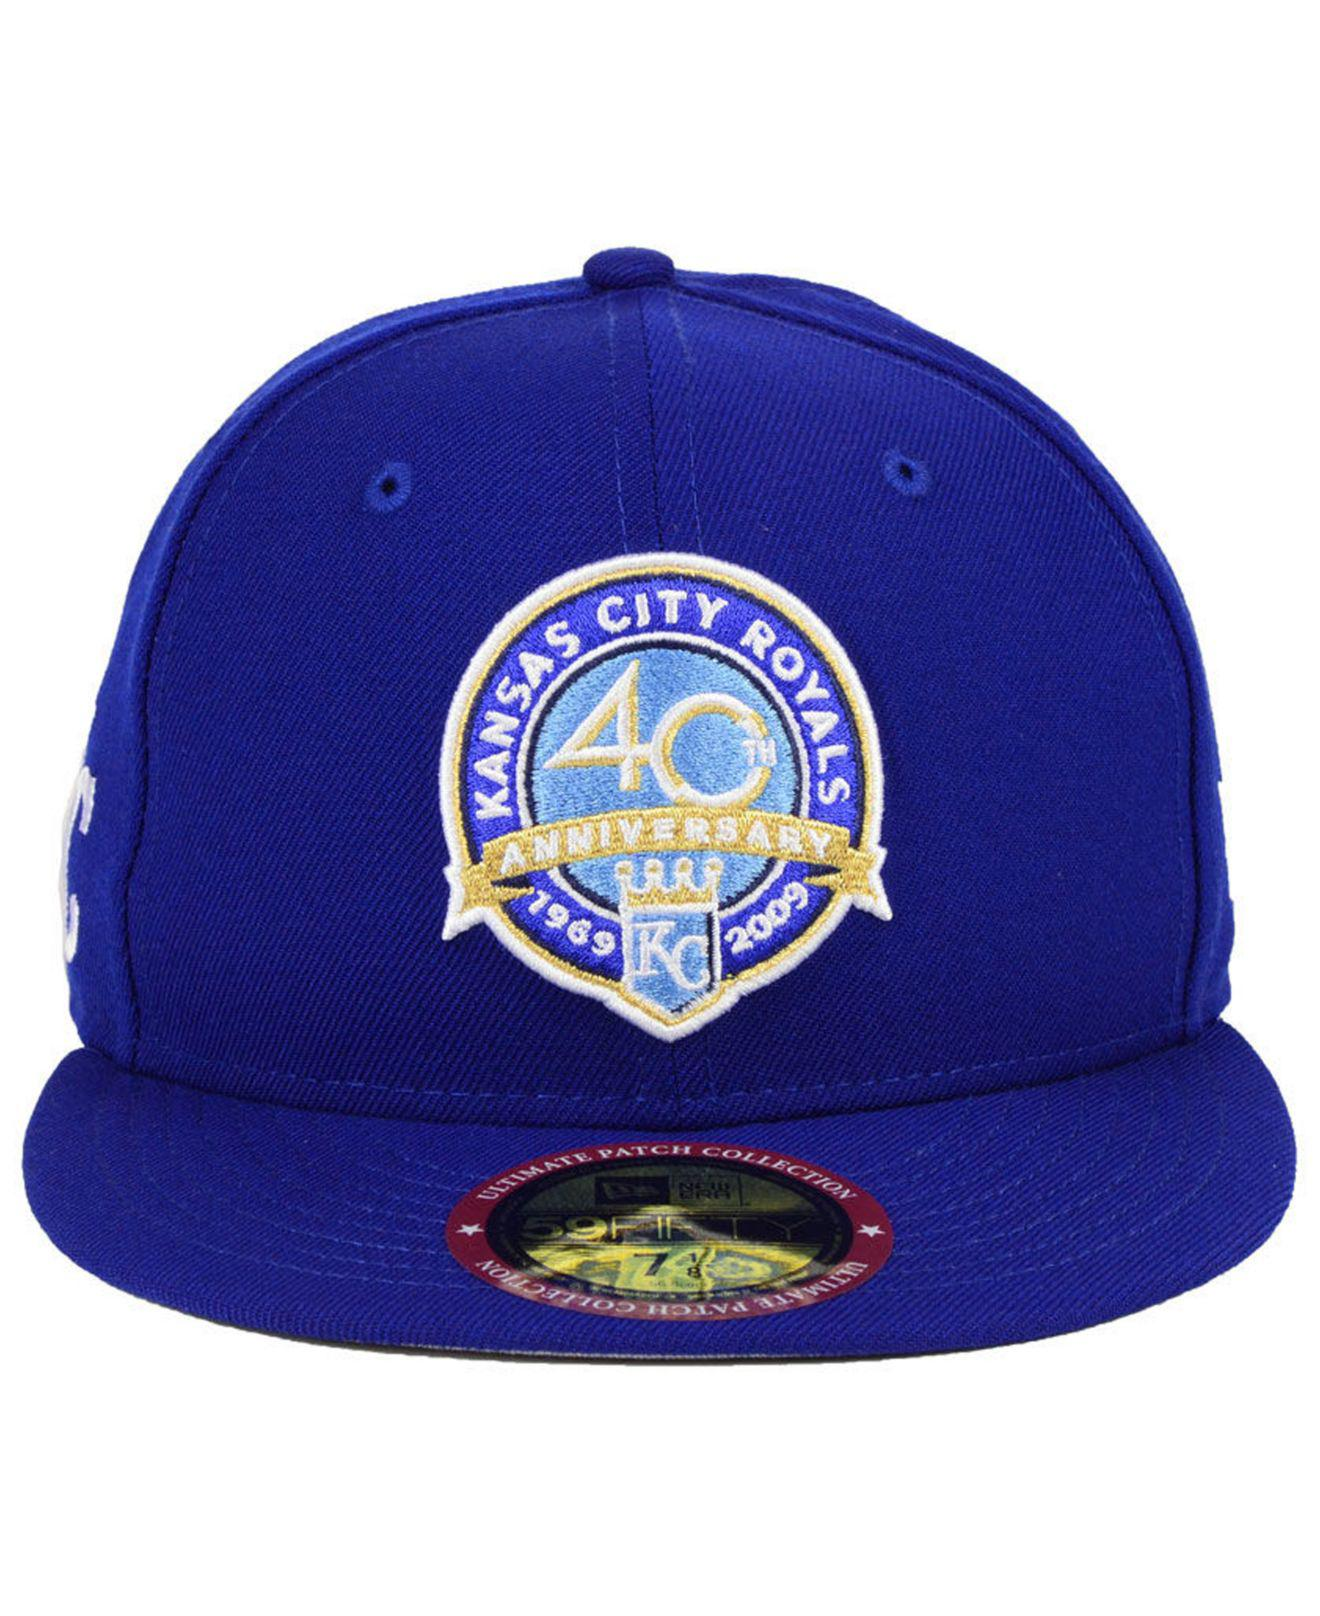 finest selection c5fe6 522b0 Lyst - KTZ Kansas City Royals Ultimate Patch Collection Front 59fifty  Fitted Cap in Blue for Men